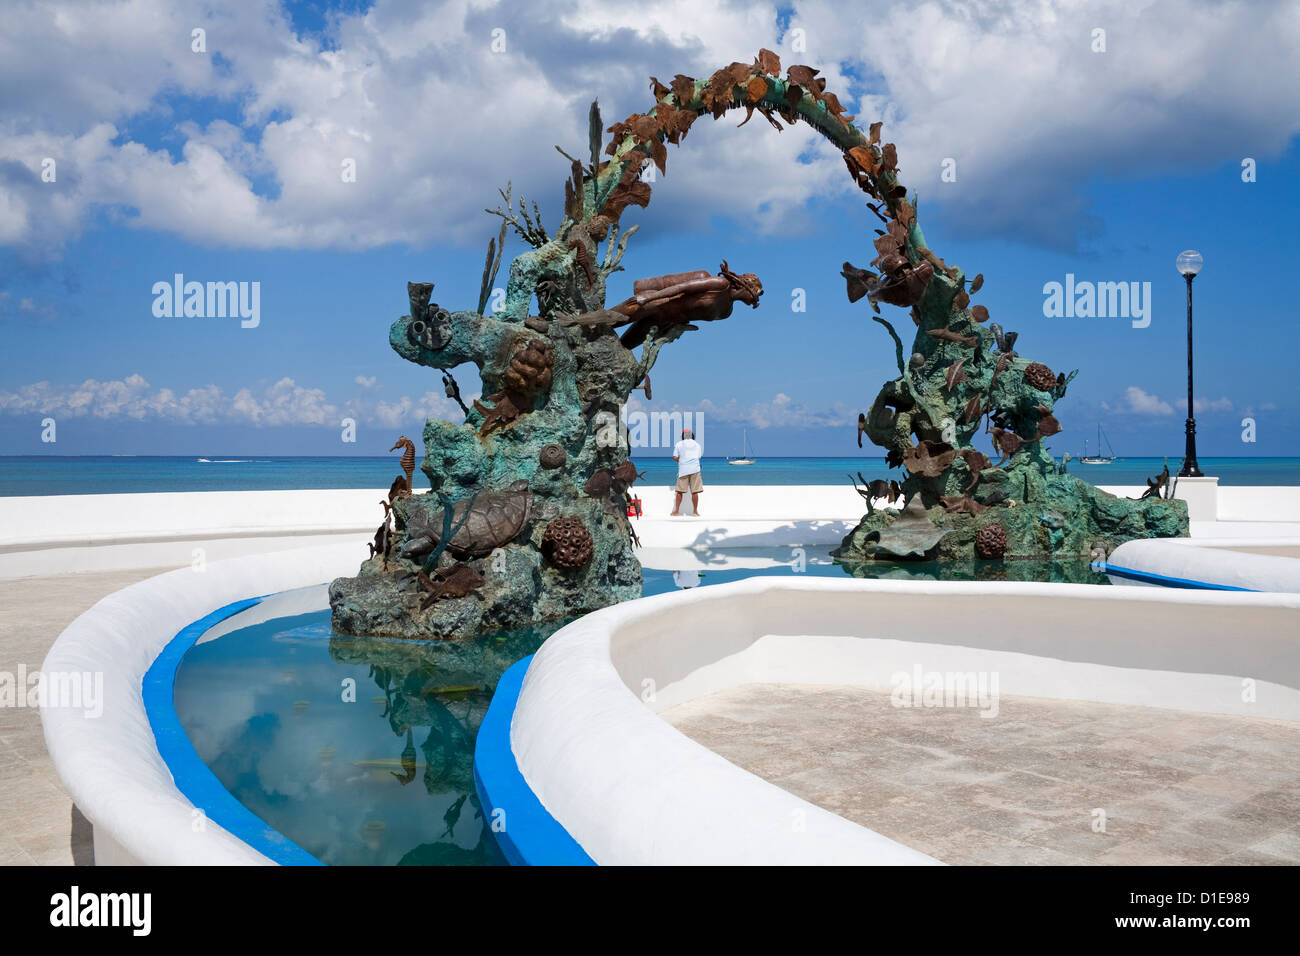 Divers fountain in San Miguel, Cozumel Island, Quintana Roo, Mexico, North America - Stock Image